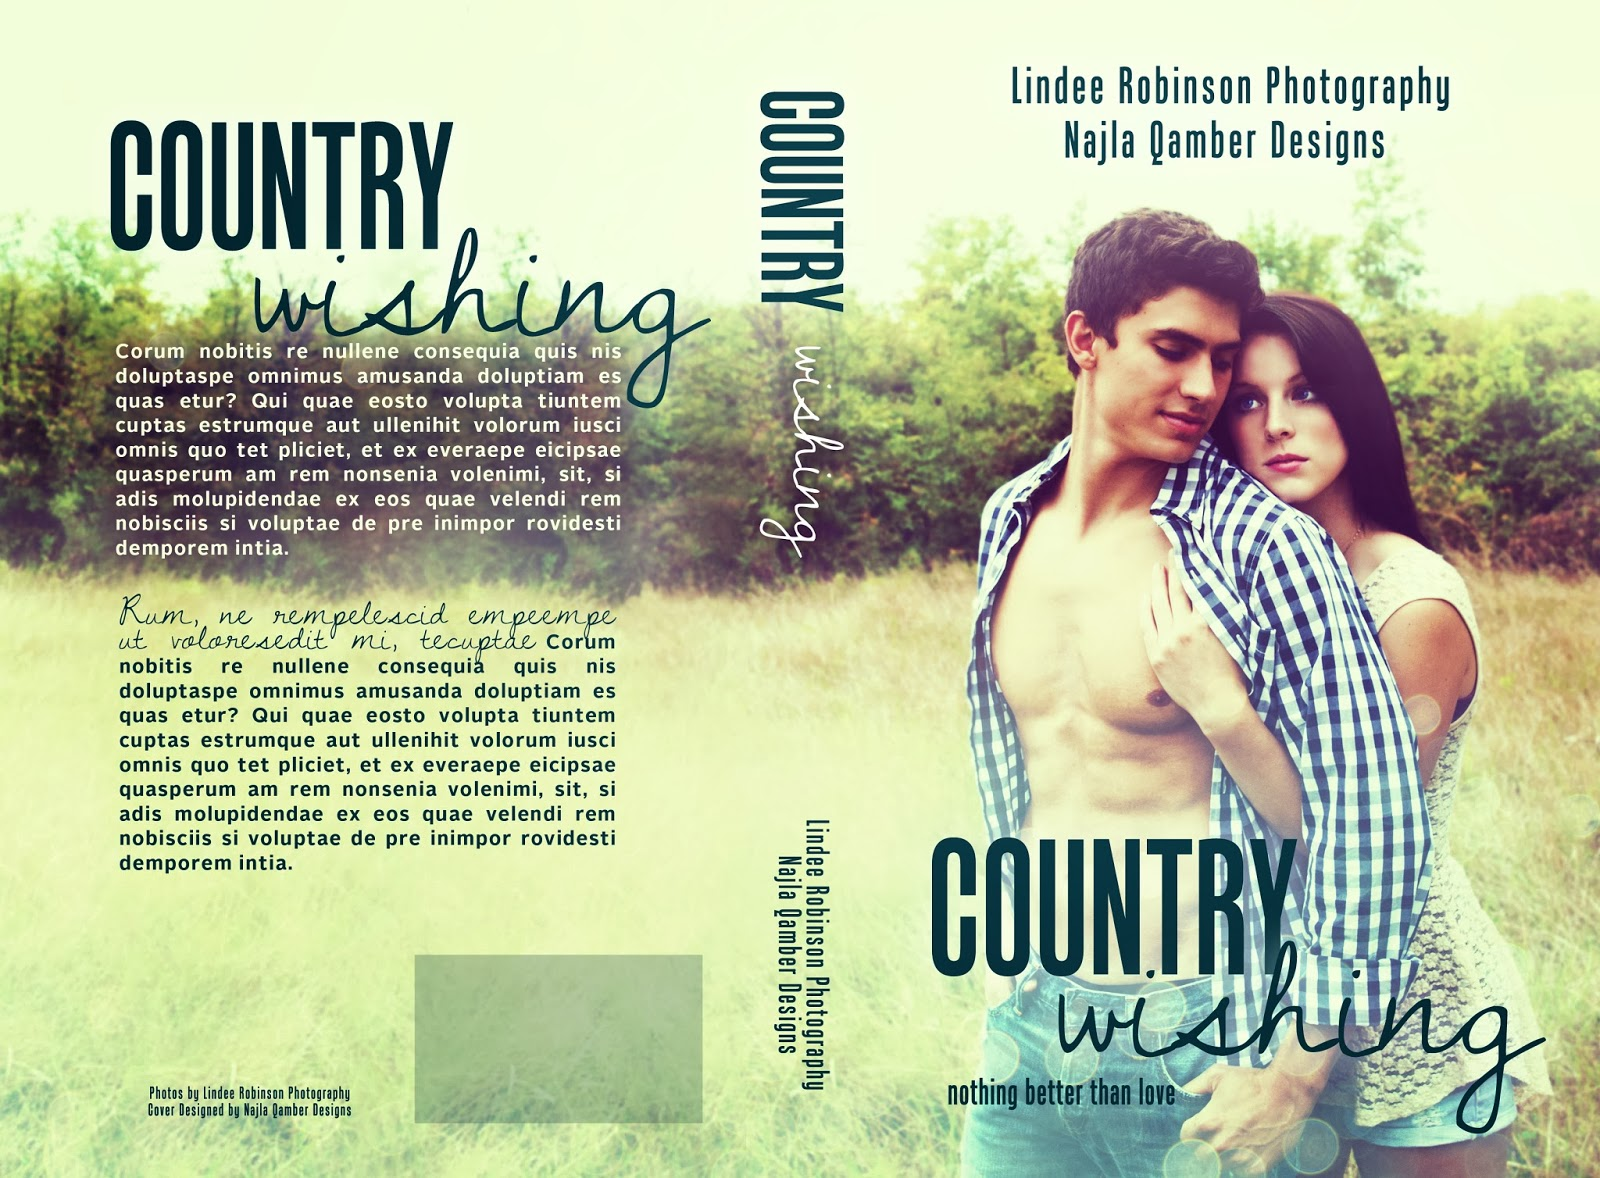 Lindee Robinson Photography: Book Covers of 2013